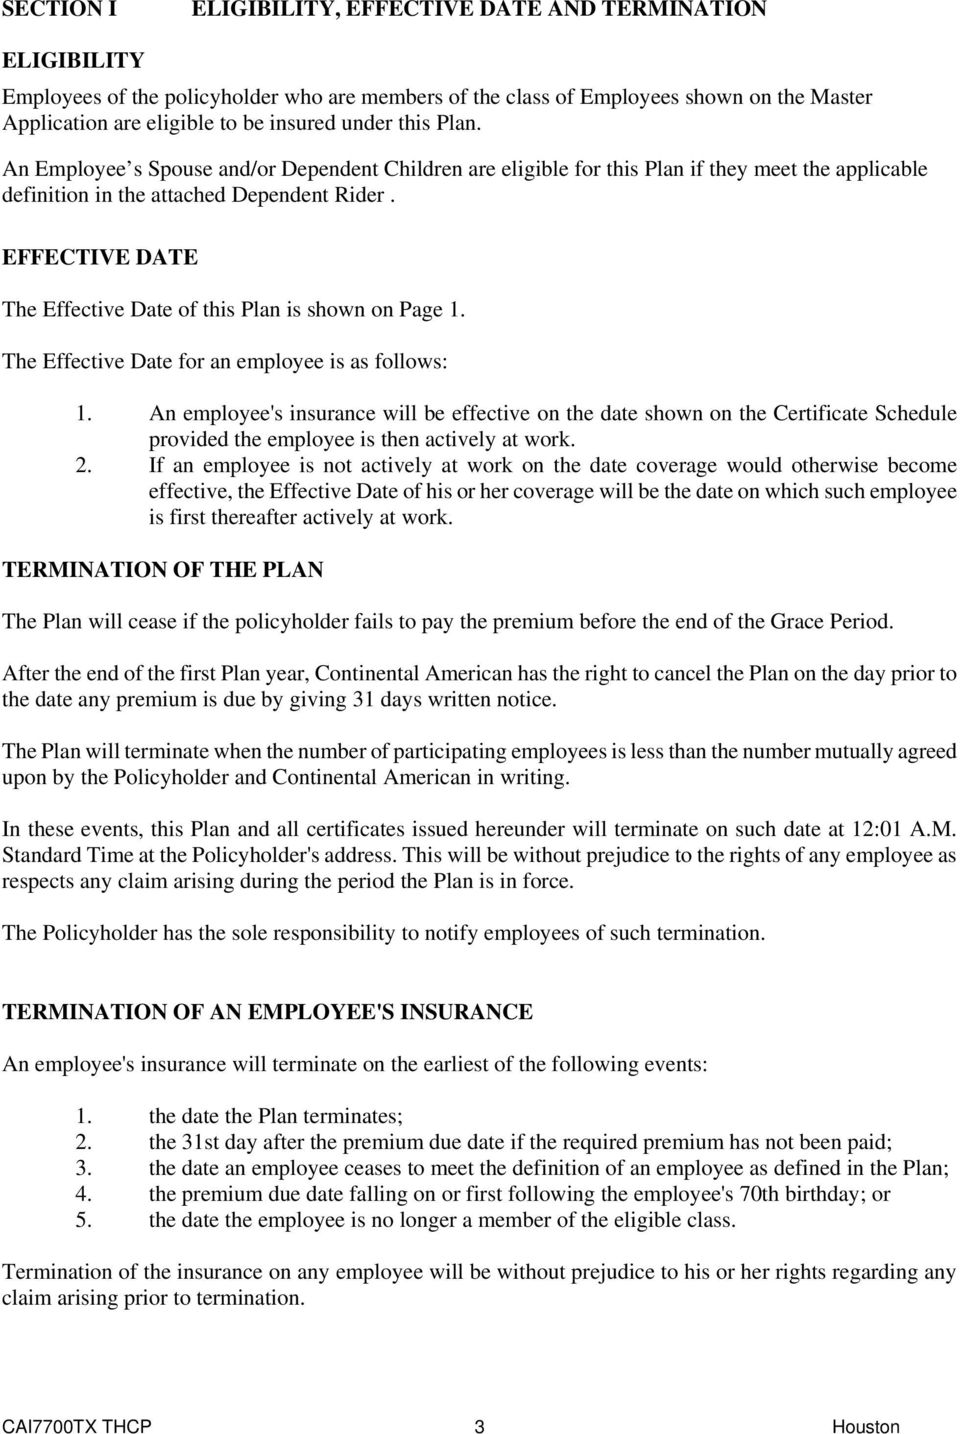 EFFECTIVE DATE The Effective Date of this Plan is shown on Page 1. The Effective Date for an employee is as follows: 1.